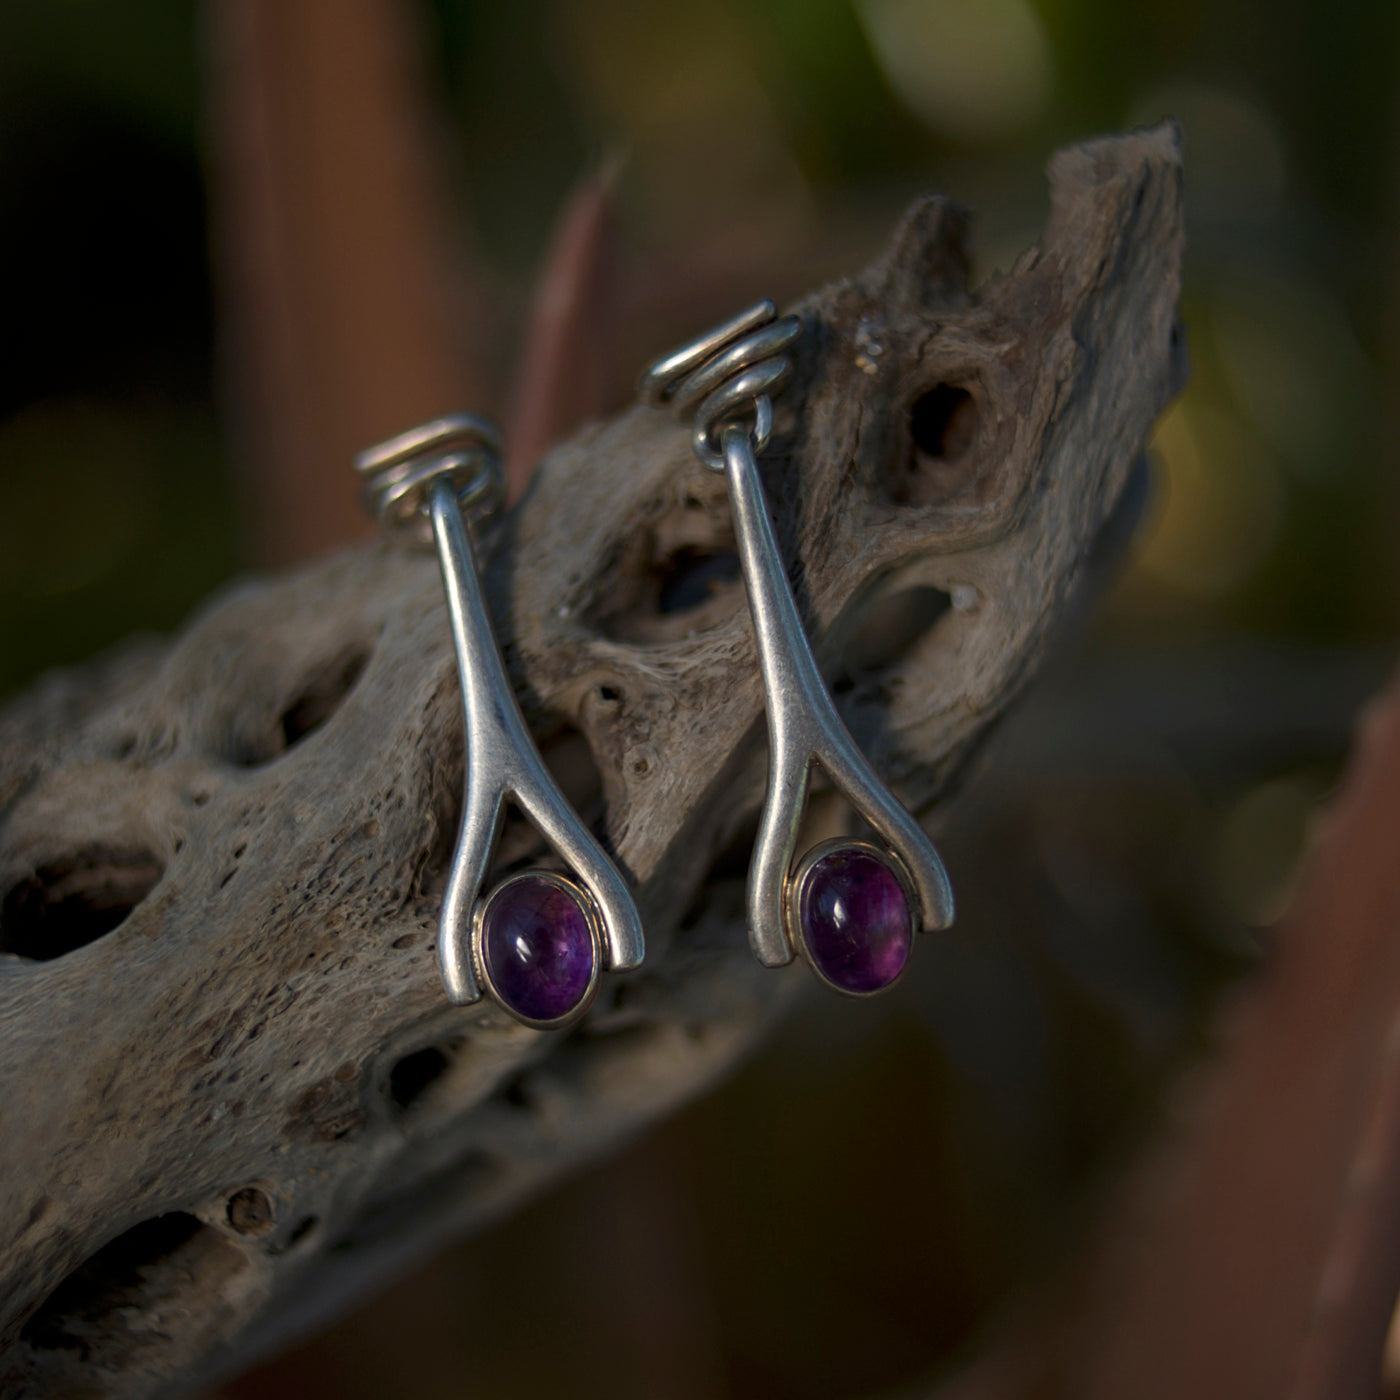 Vintage Sterling Silver & Amethyst Earrings from Taxco